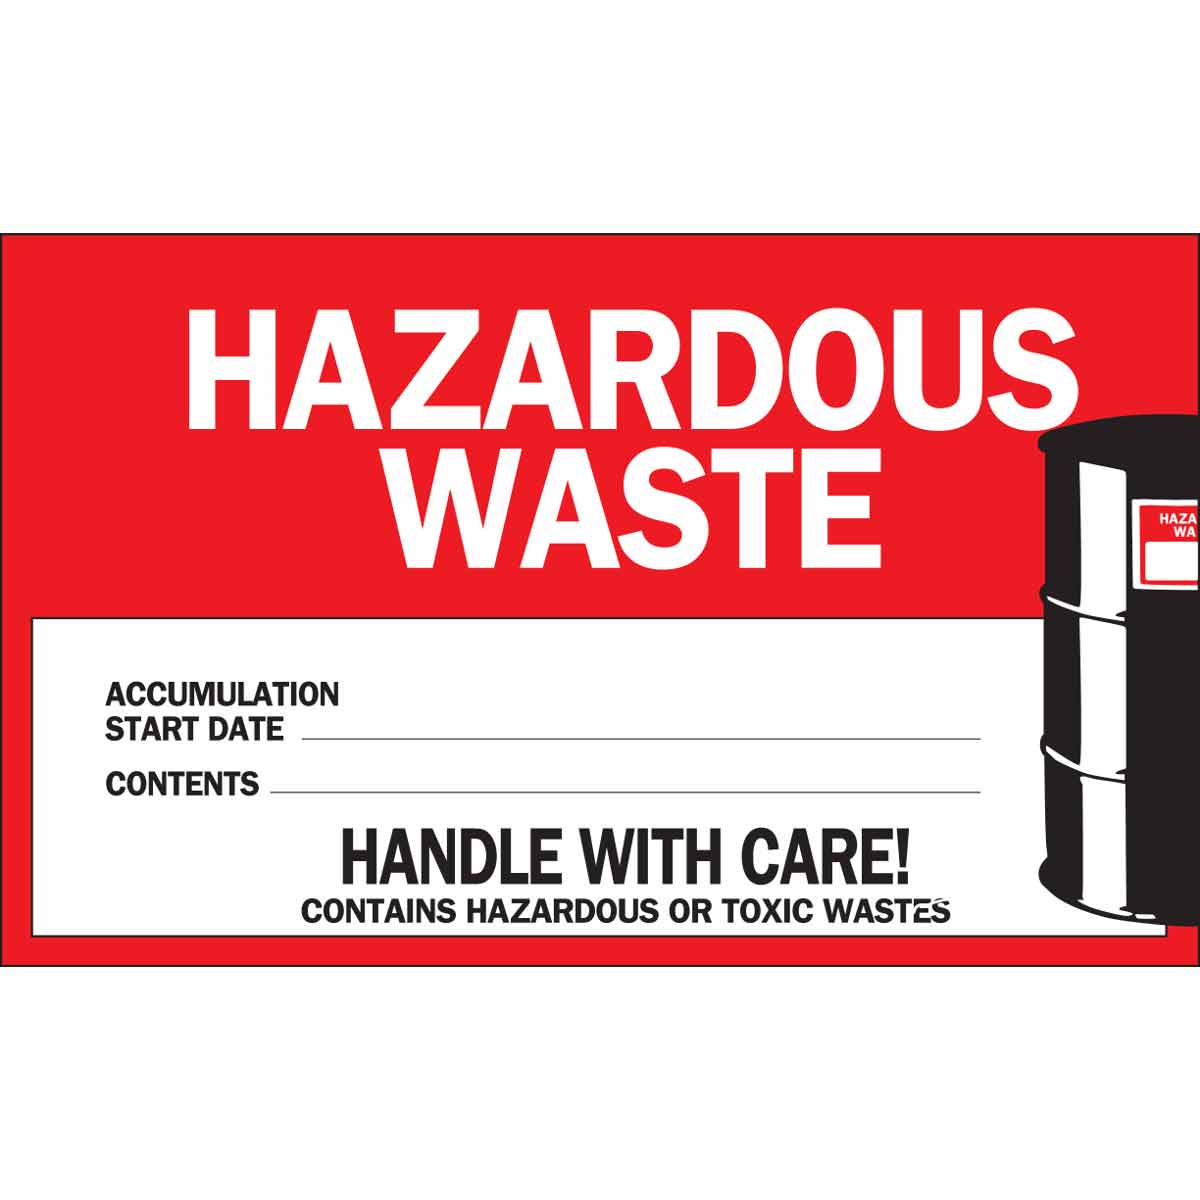 picture regarding Free Printable Hazardous Waste Labels identified as Damaging Squander ACCUMULATION Commence Day CONTENTS Labels